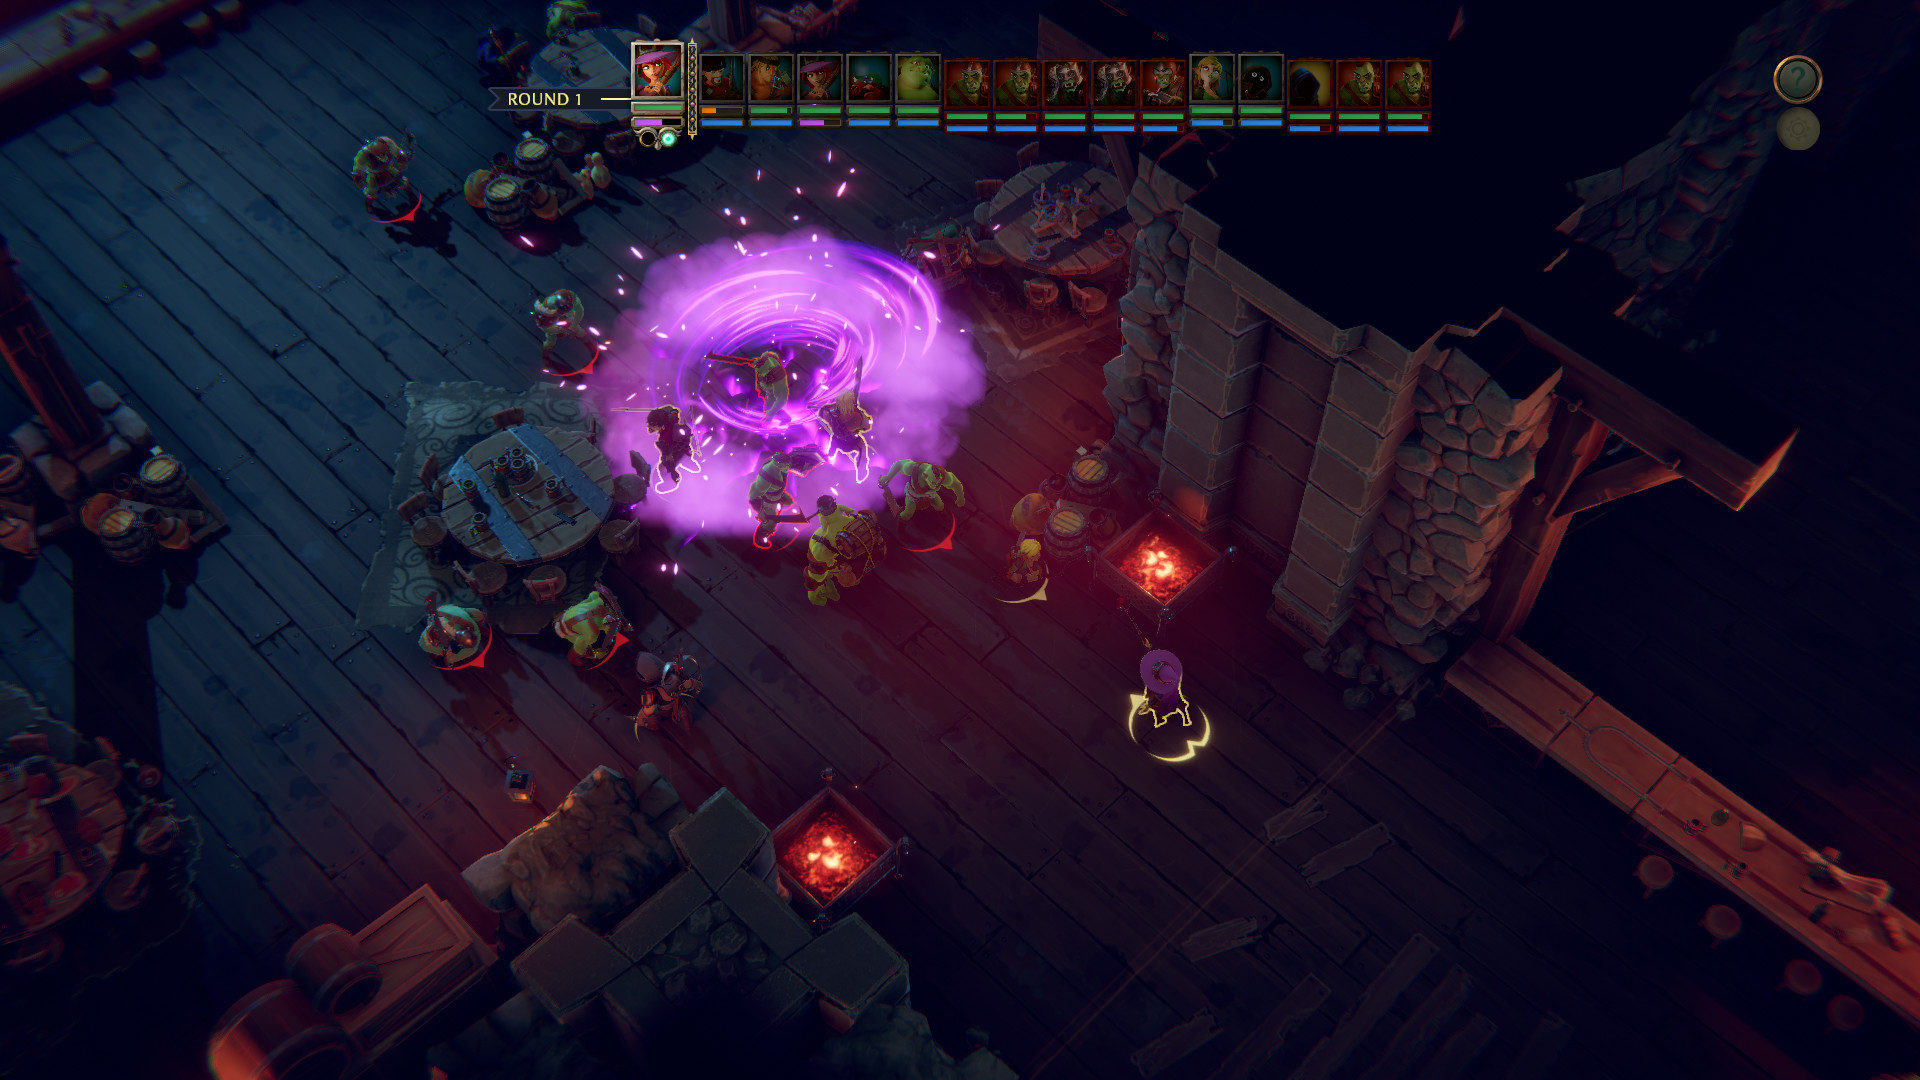 Dungeon-crawling gameplay in The Dungeon of Naheulbeuk: The Amulet of Chaos.